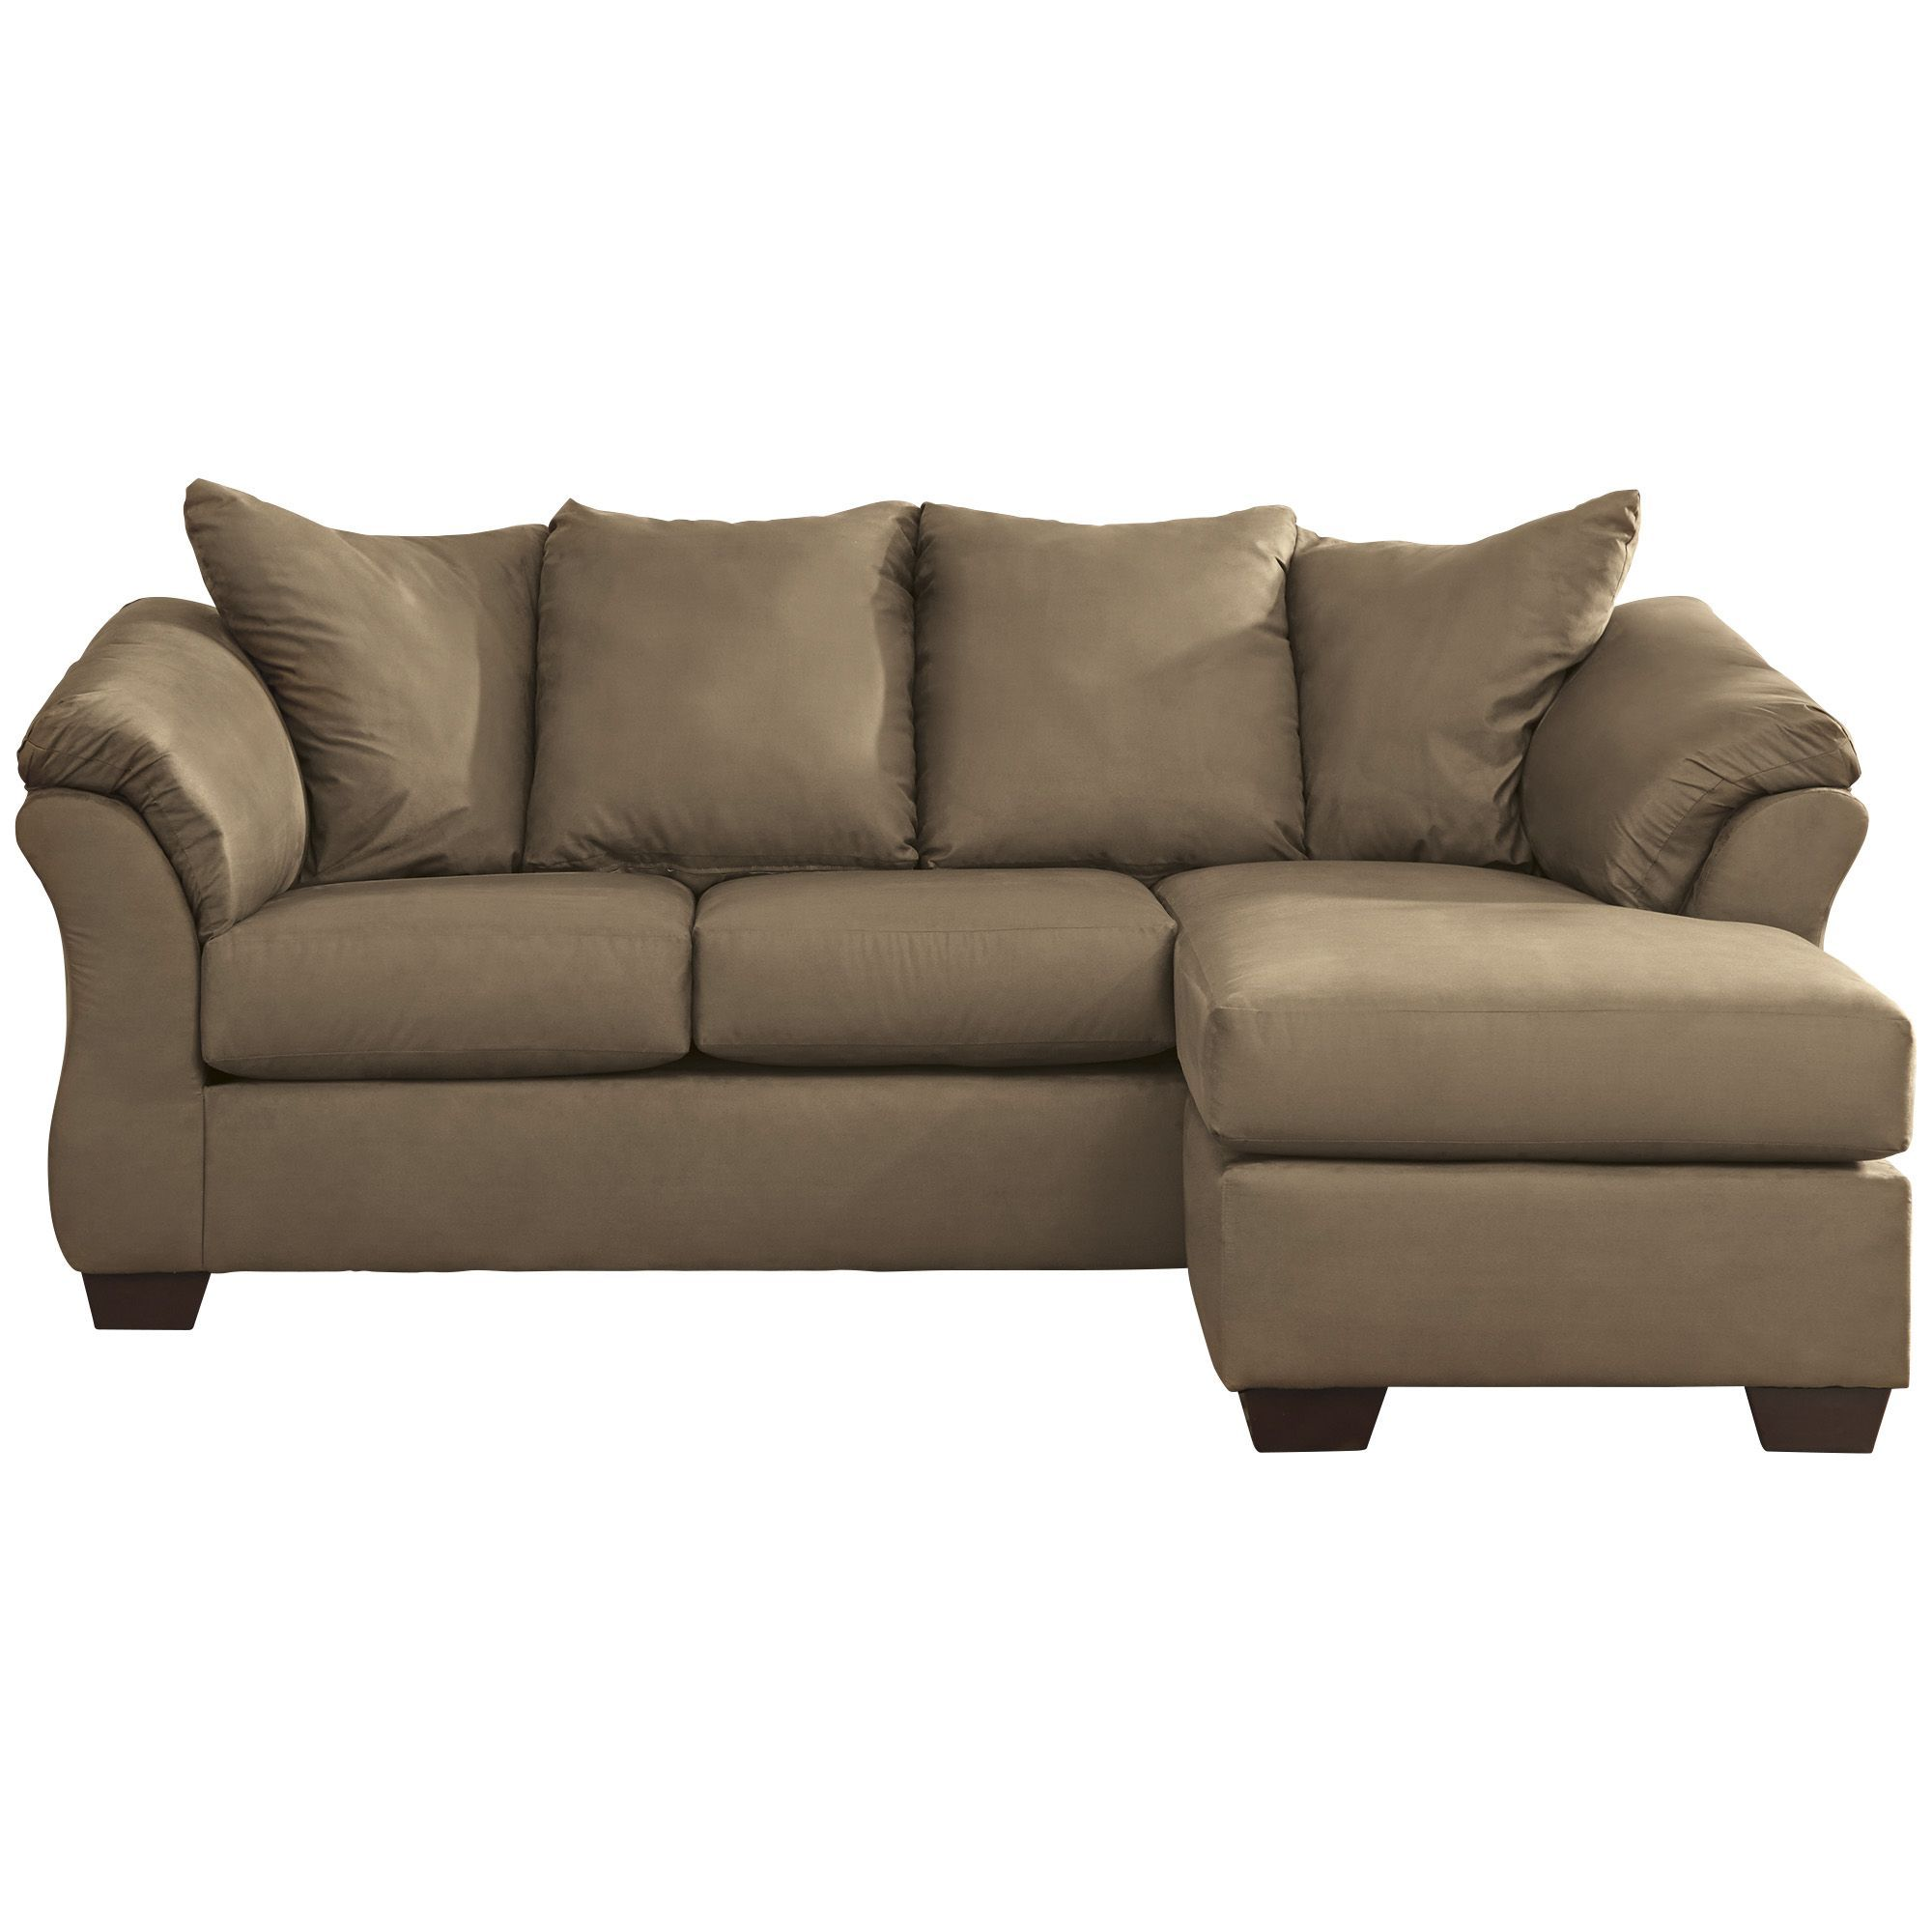 Ashley Furniture Darcy Sofa With Chaise